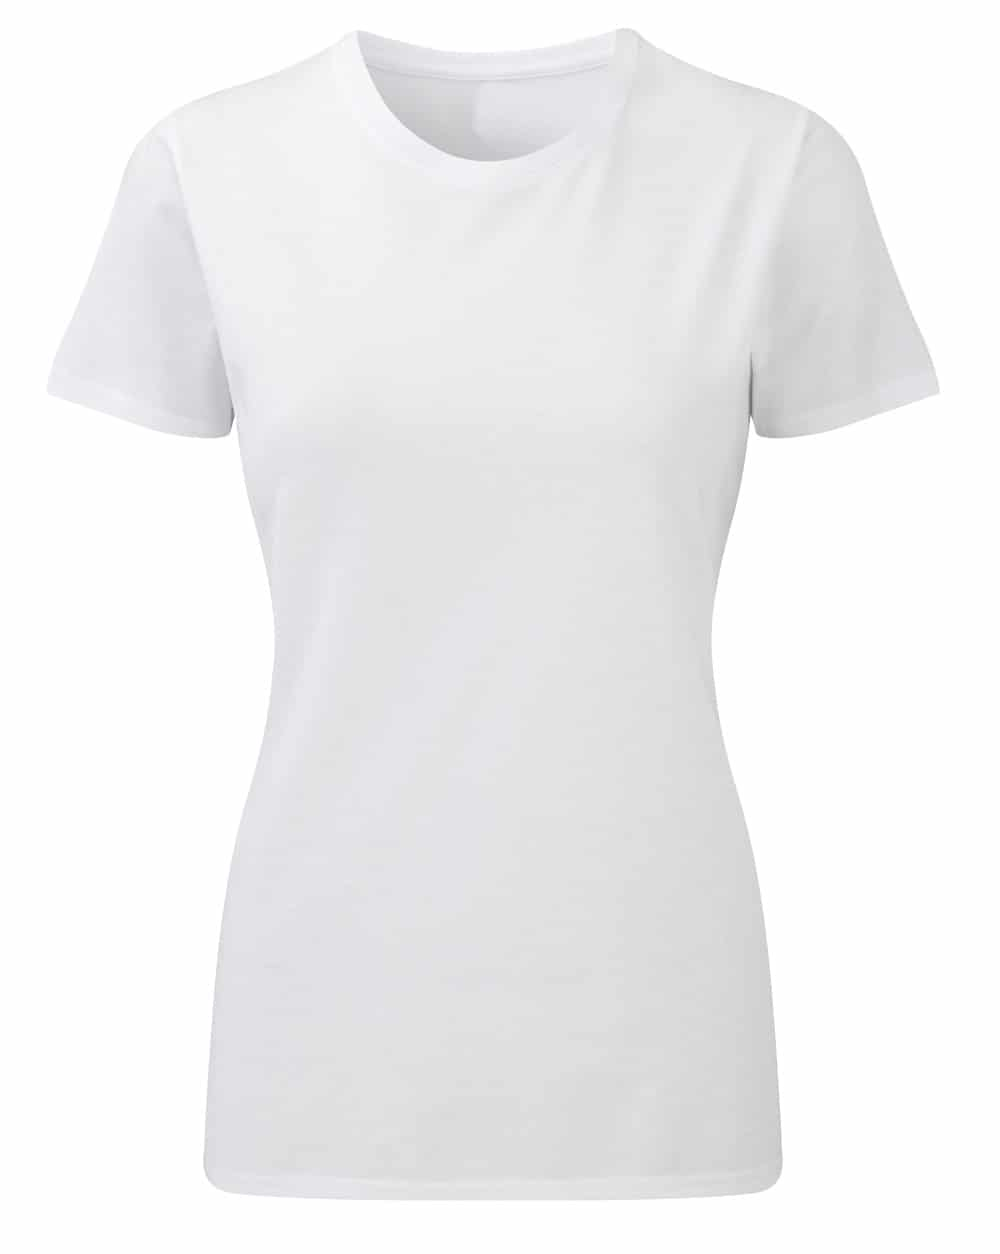 T-ACTIVE-F-B-M__IMG__HD__T-Shirt20Polyester20Blanc20Femme20Taille20M__1__1.jpg